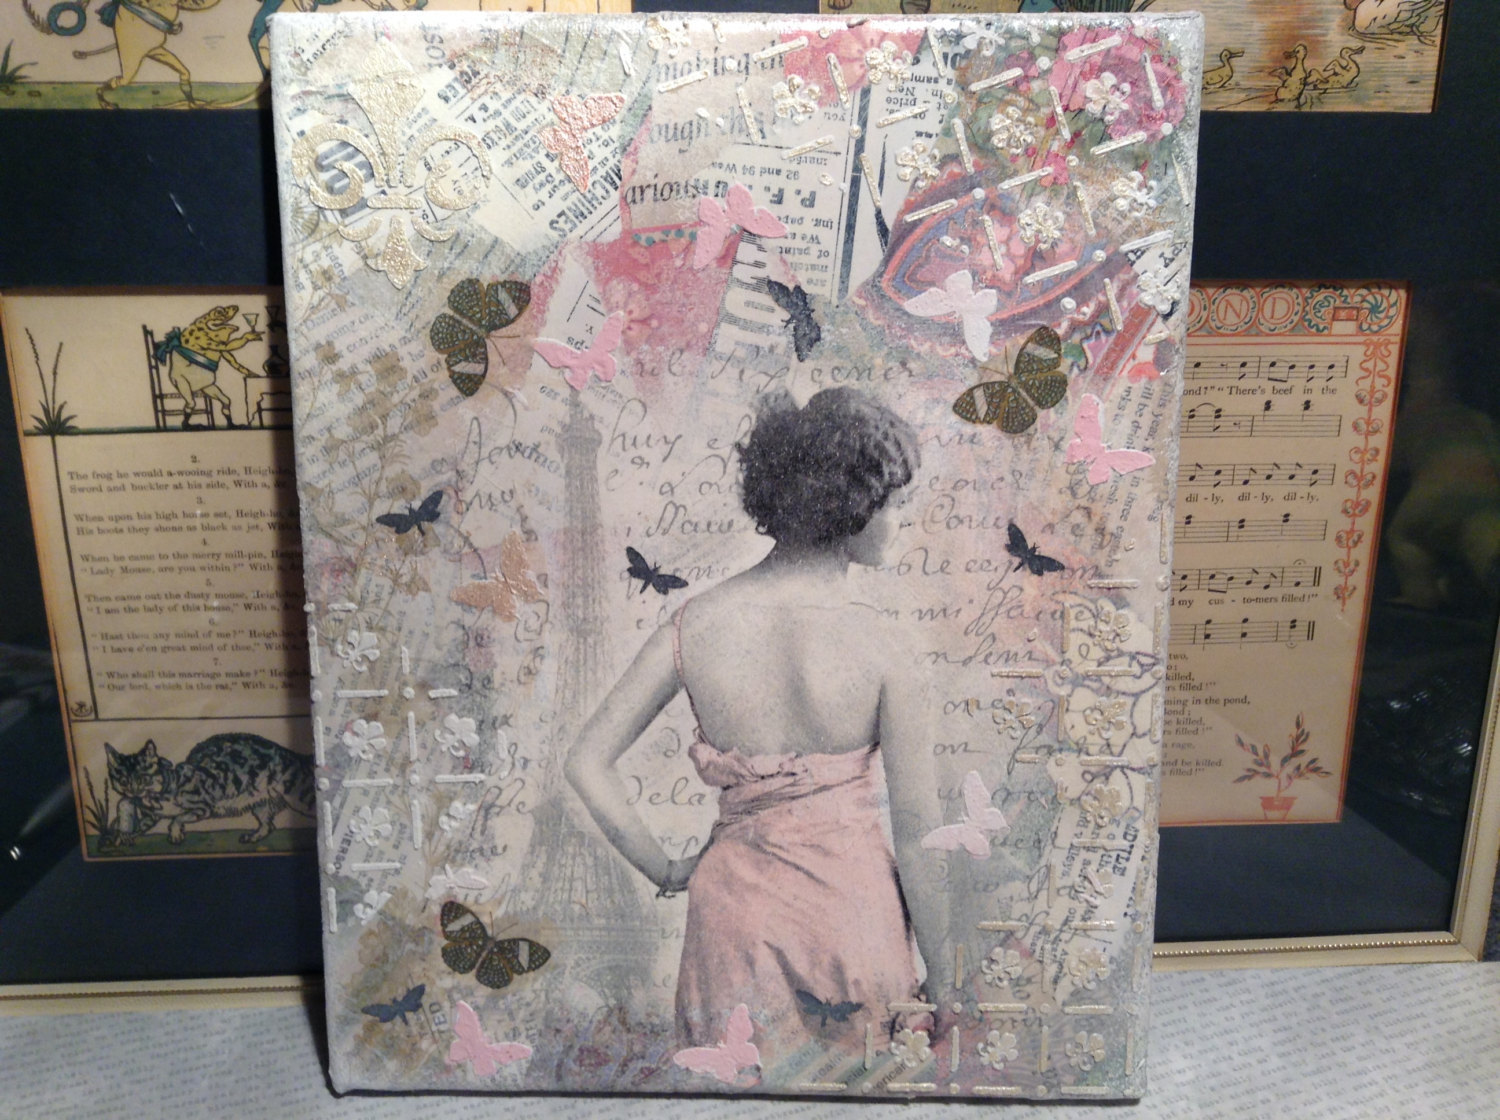 Russian Handmade Mixed Media Collage Canvas, 8x10, Woman in Pink Dress